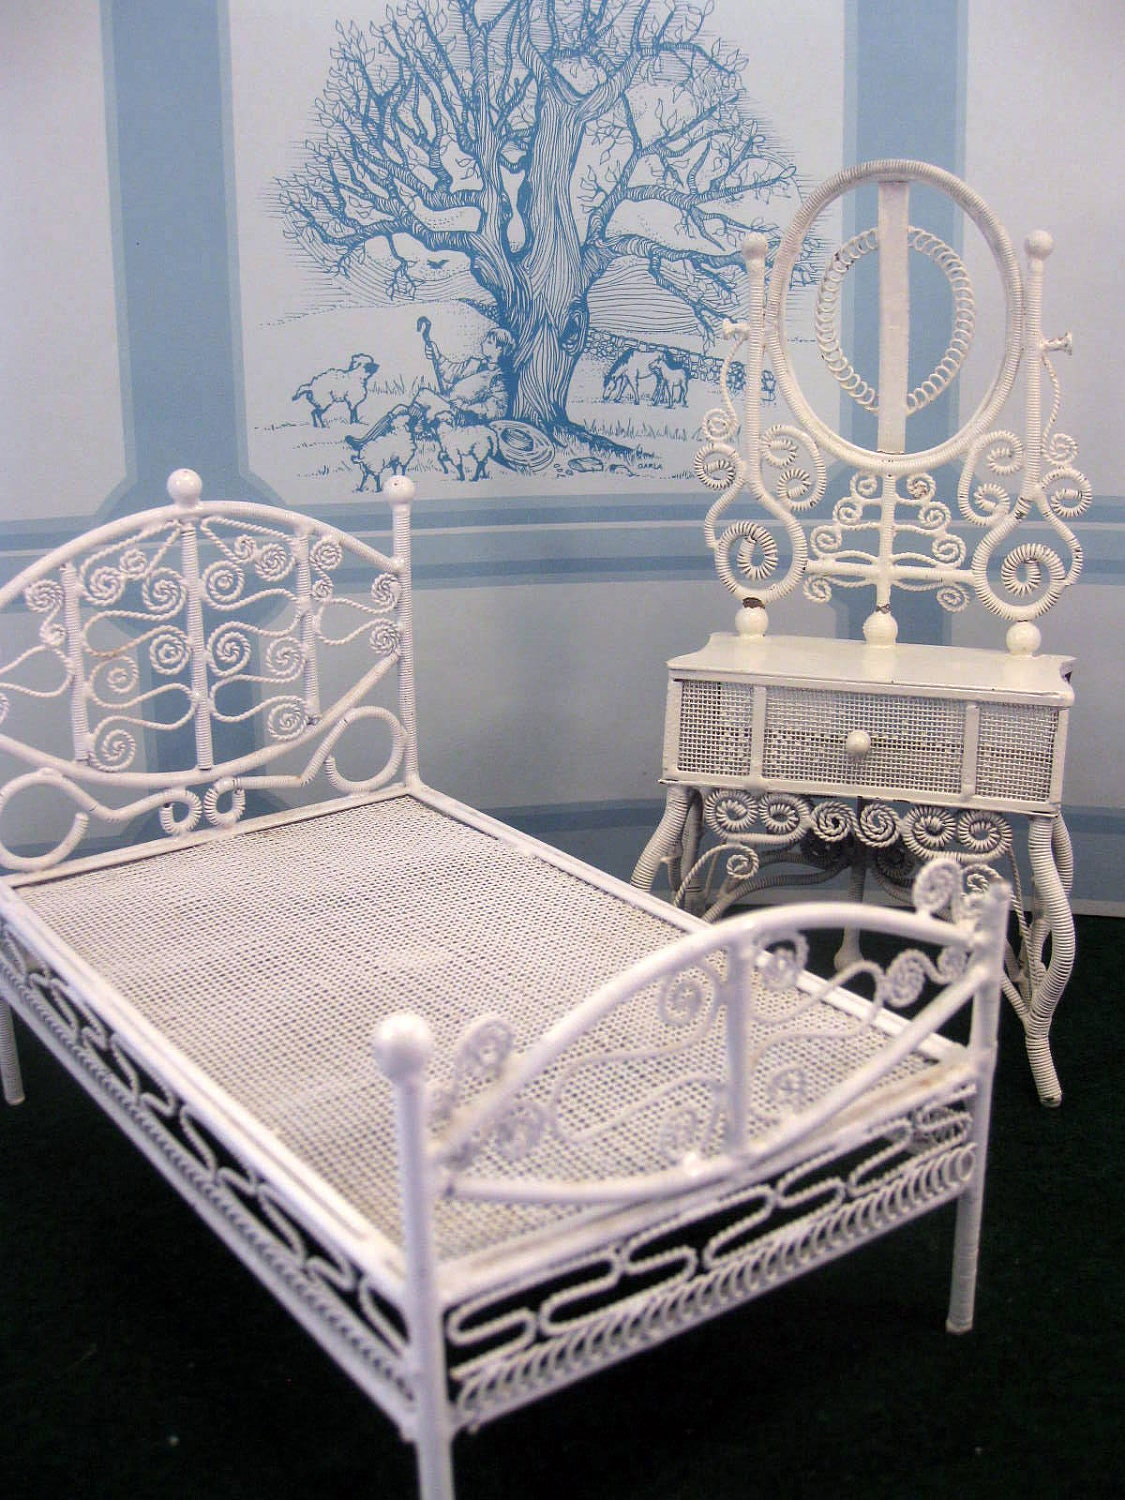 dollhouse furniture wicker bedroom set victorian miniature 13869 | il fullxfull 258982006